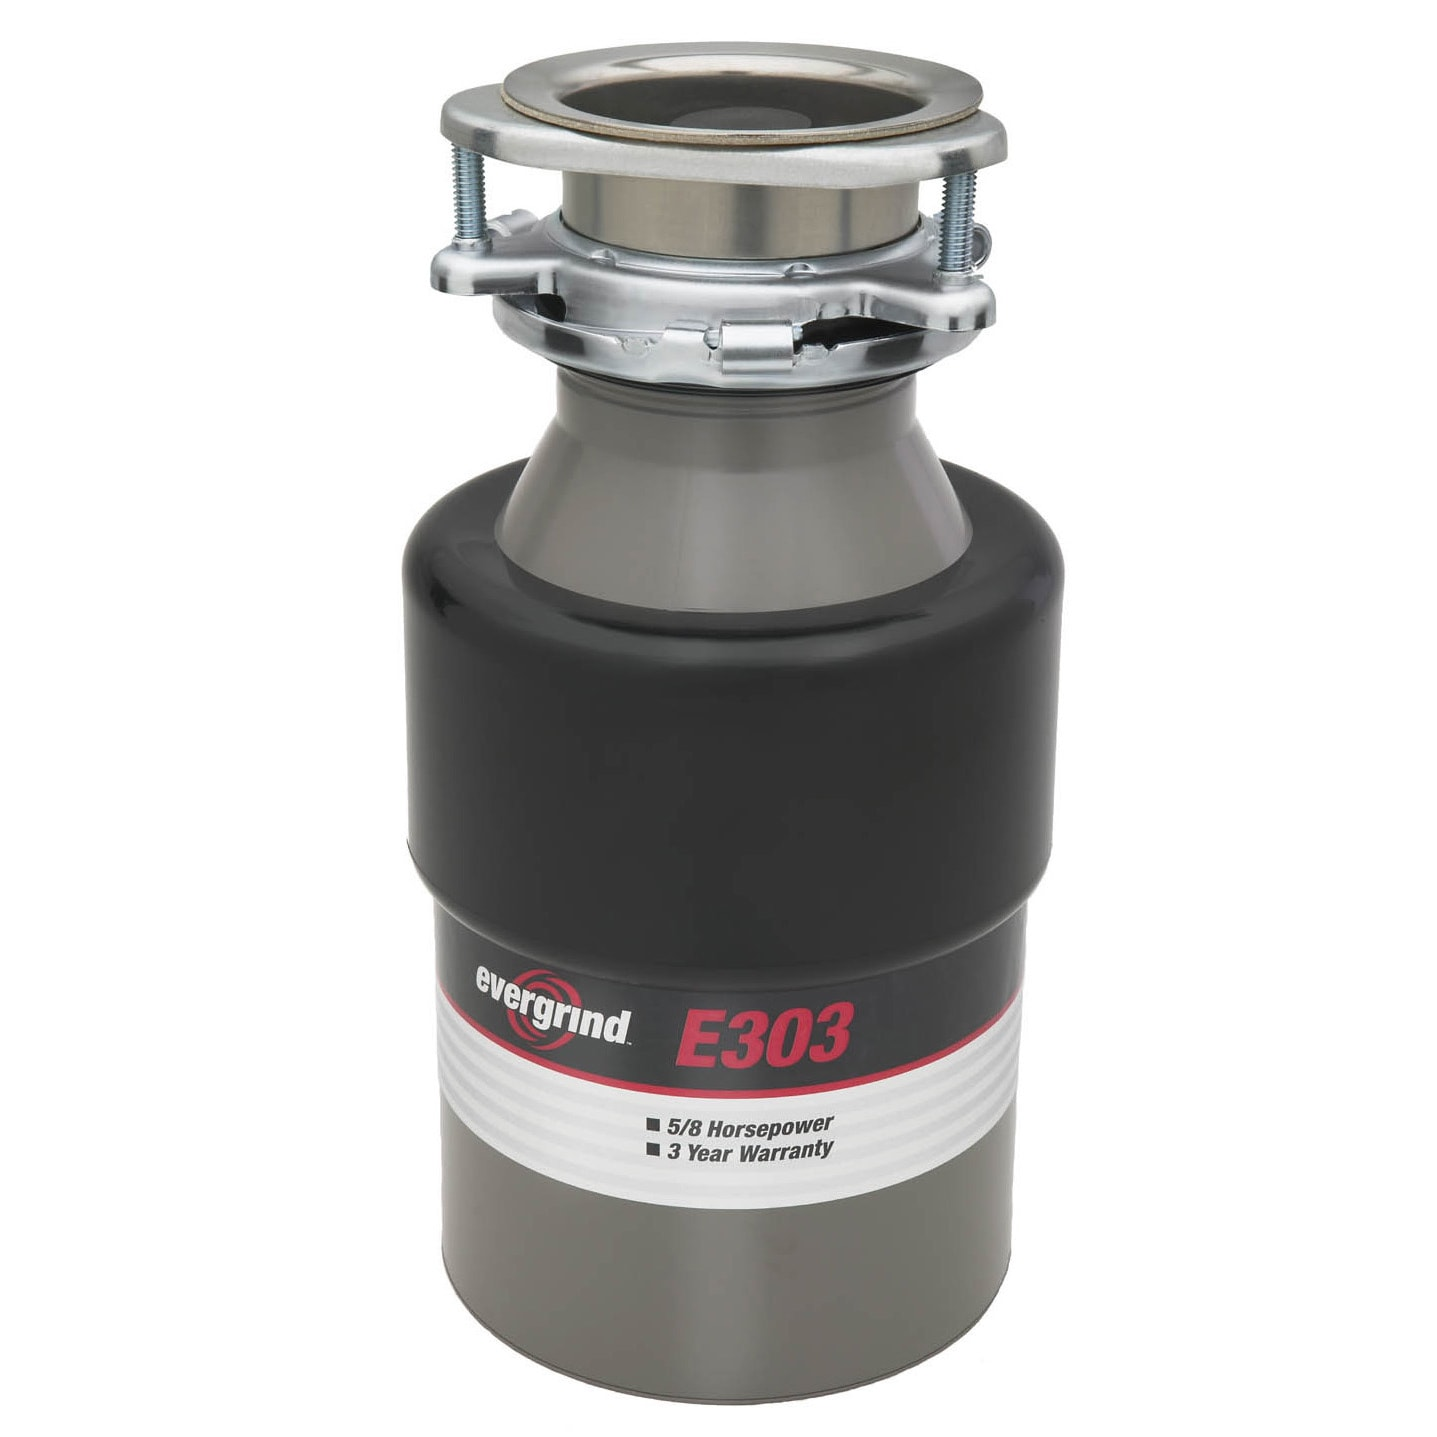 Shop Insinkerator E303 5/8 HP Garbage Disposer - Free Shipping Today ...